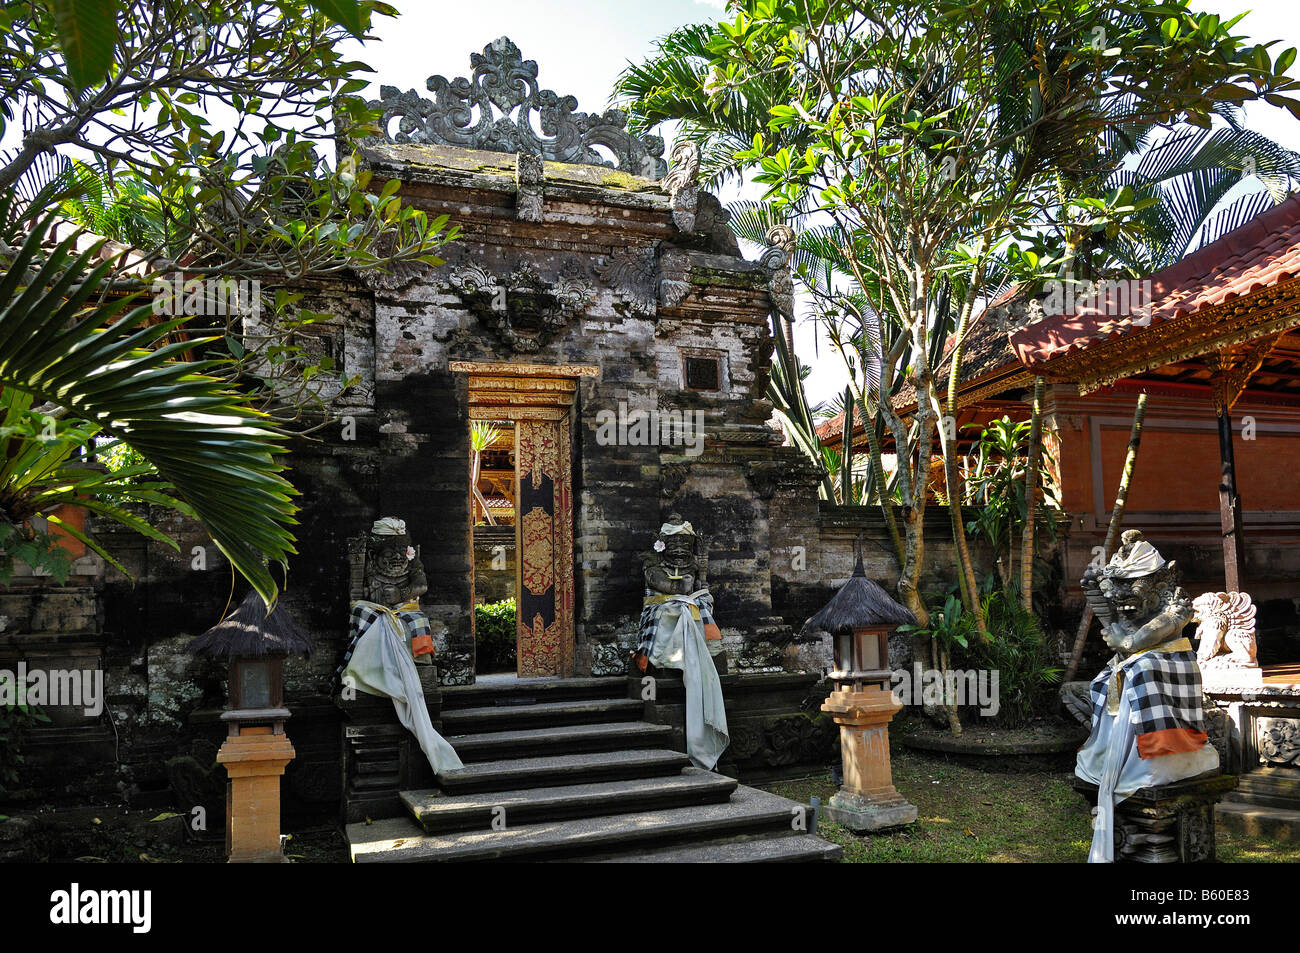 Gate located in Puri Saren Palace, Ubud, Bali, Indonesia - Stock Image